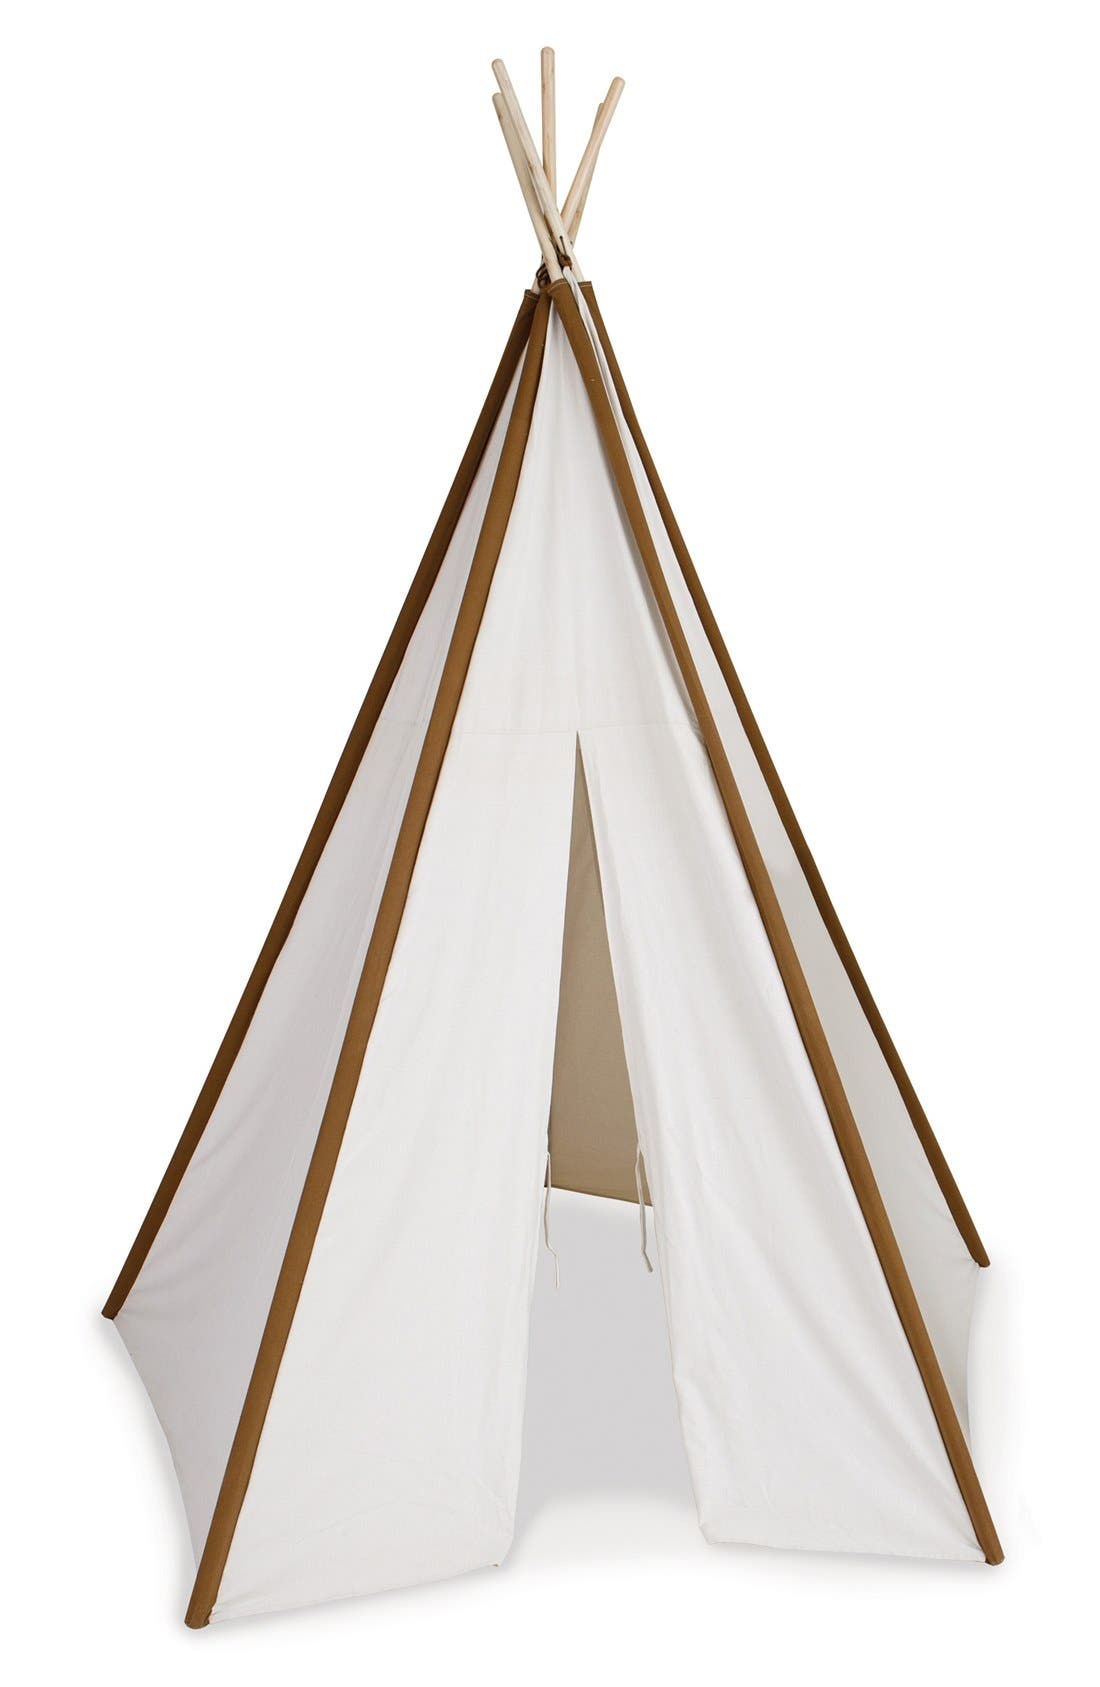 Main Image - Pacific Play Tents Cotton Canvas Teepee  sc 1 st  Nordstrom & Pacific Play Tents Cotton Canvas Teepee | Nordstrom